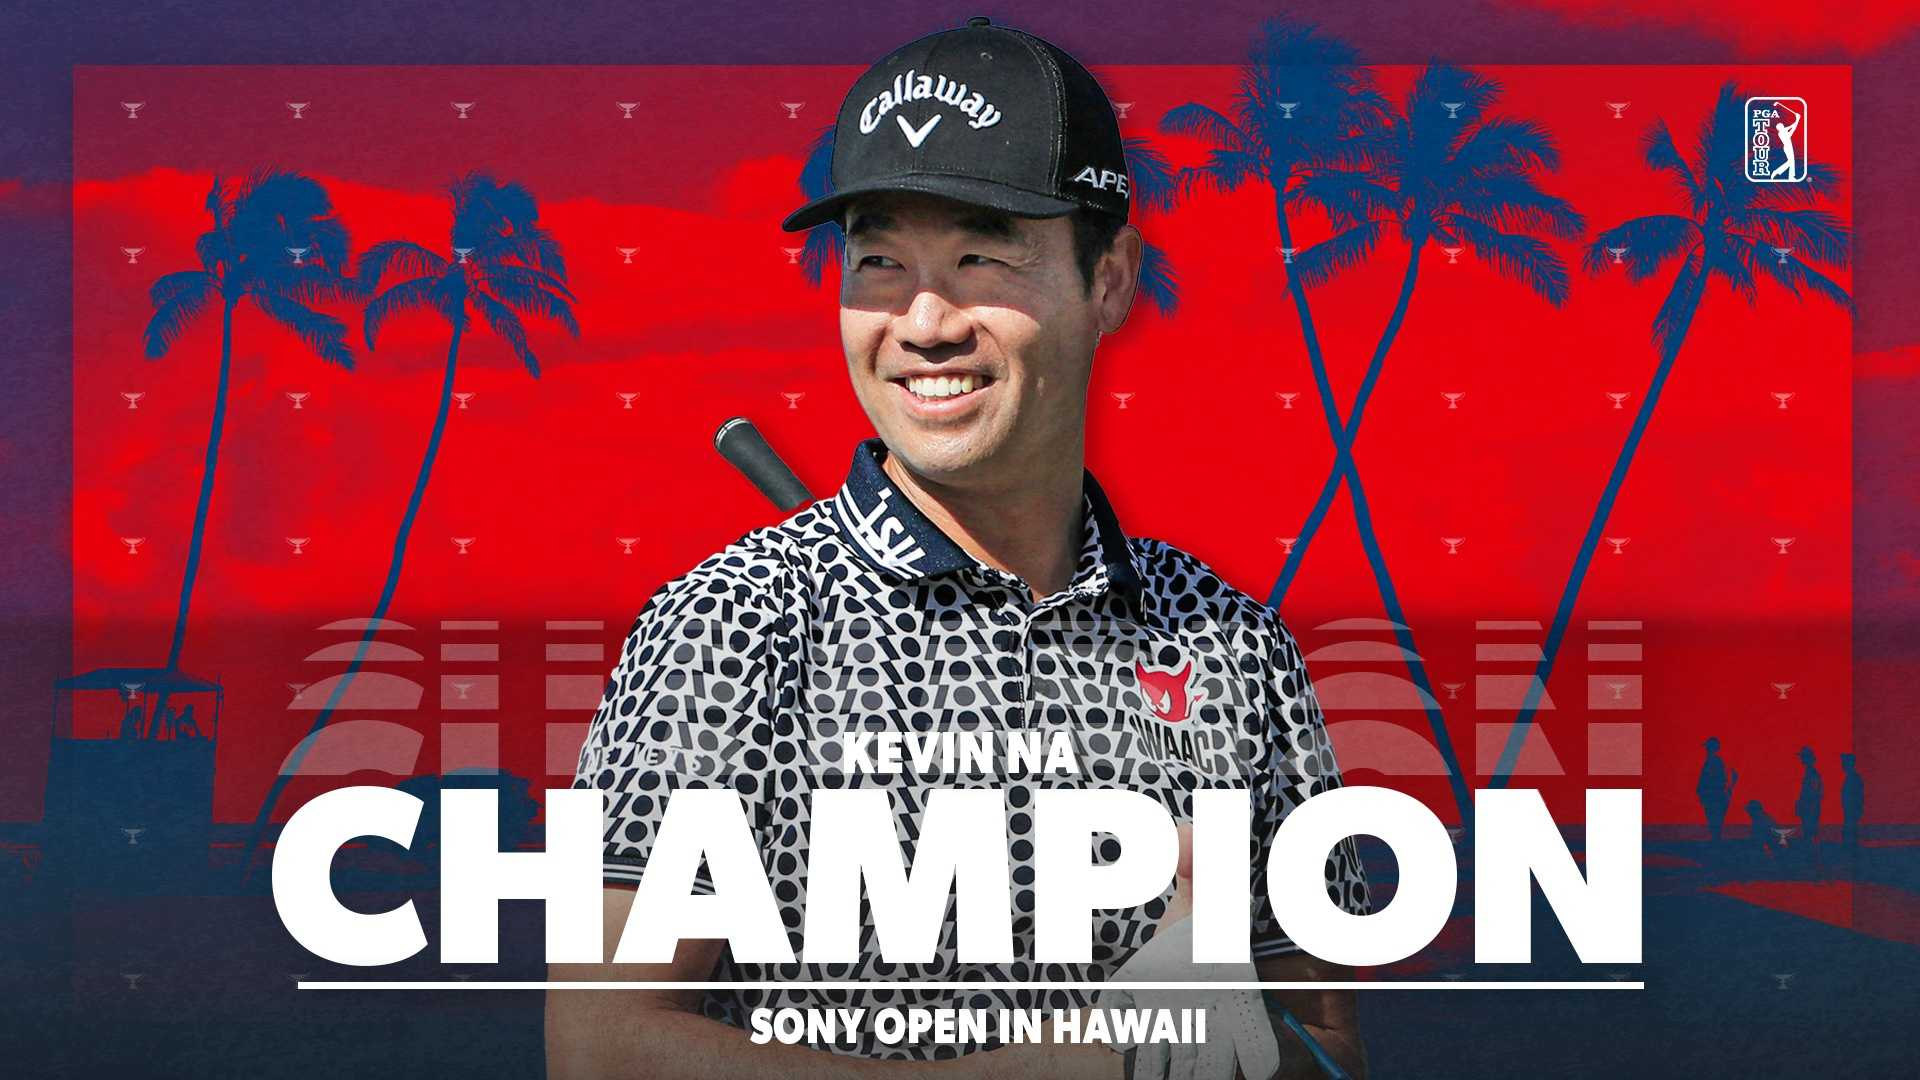 The Final Round of the 2021 Sony Open in Hawaii